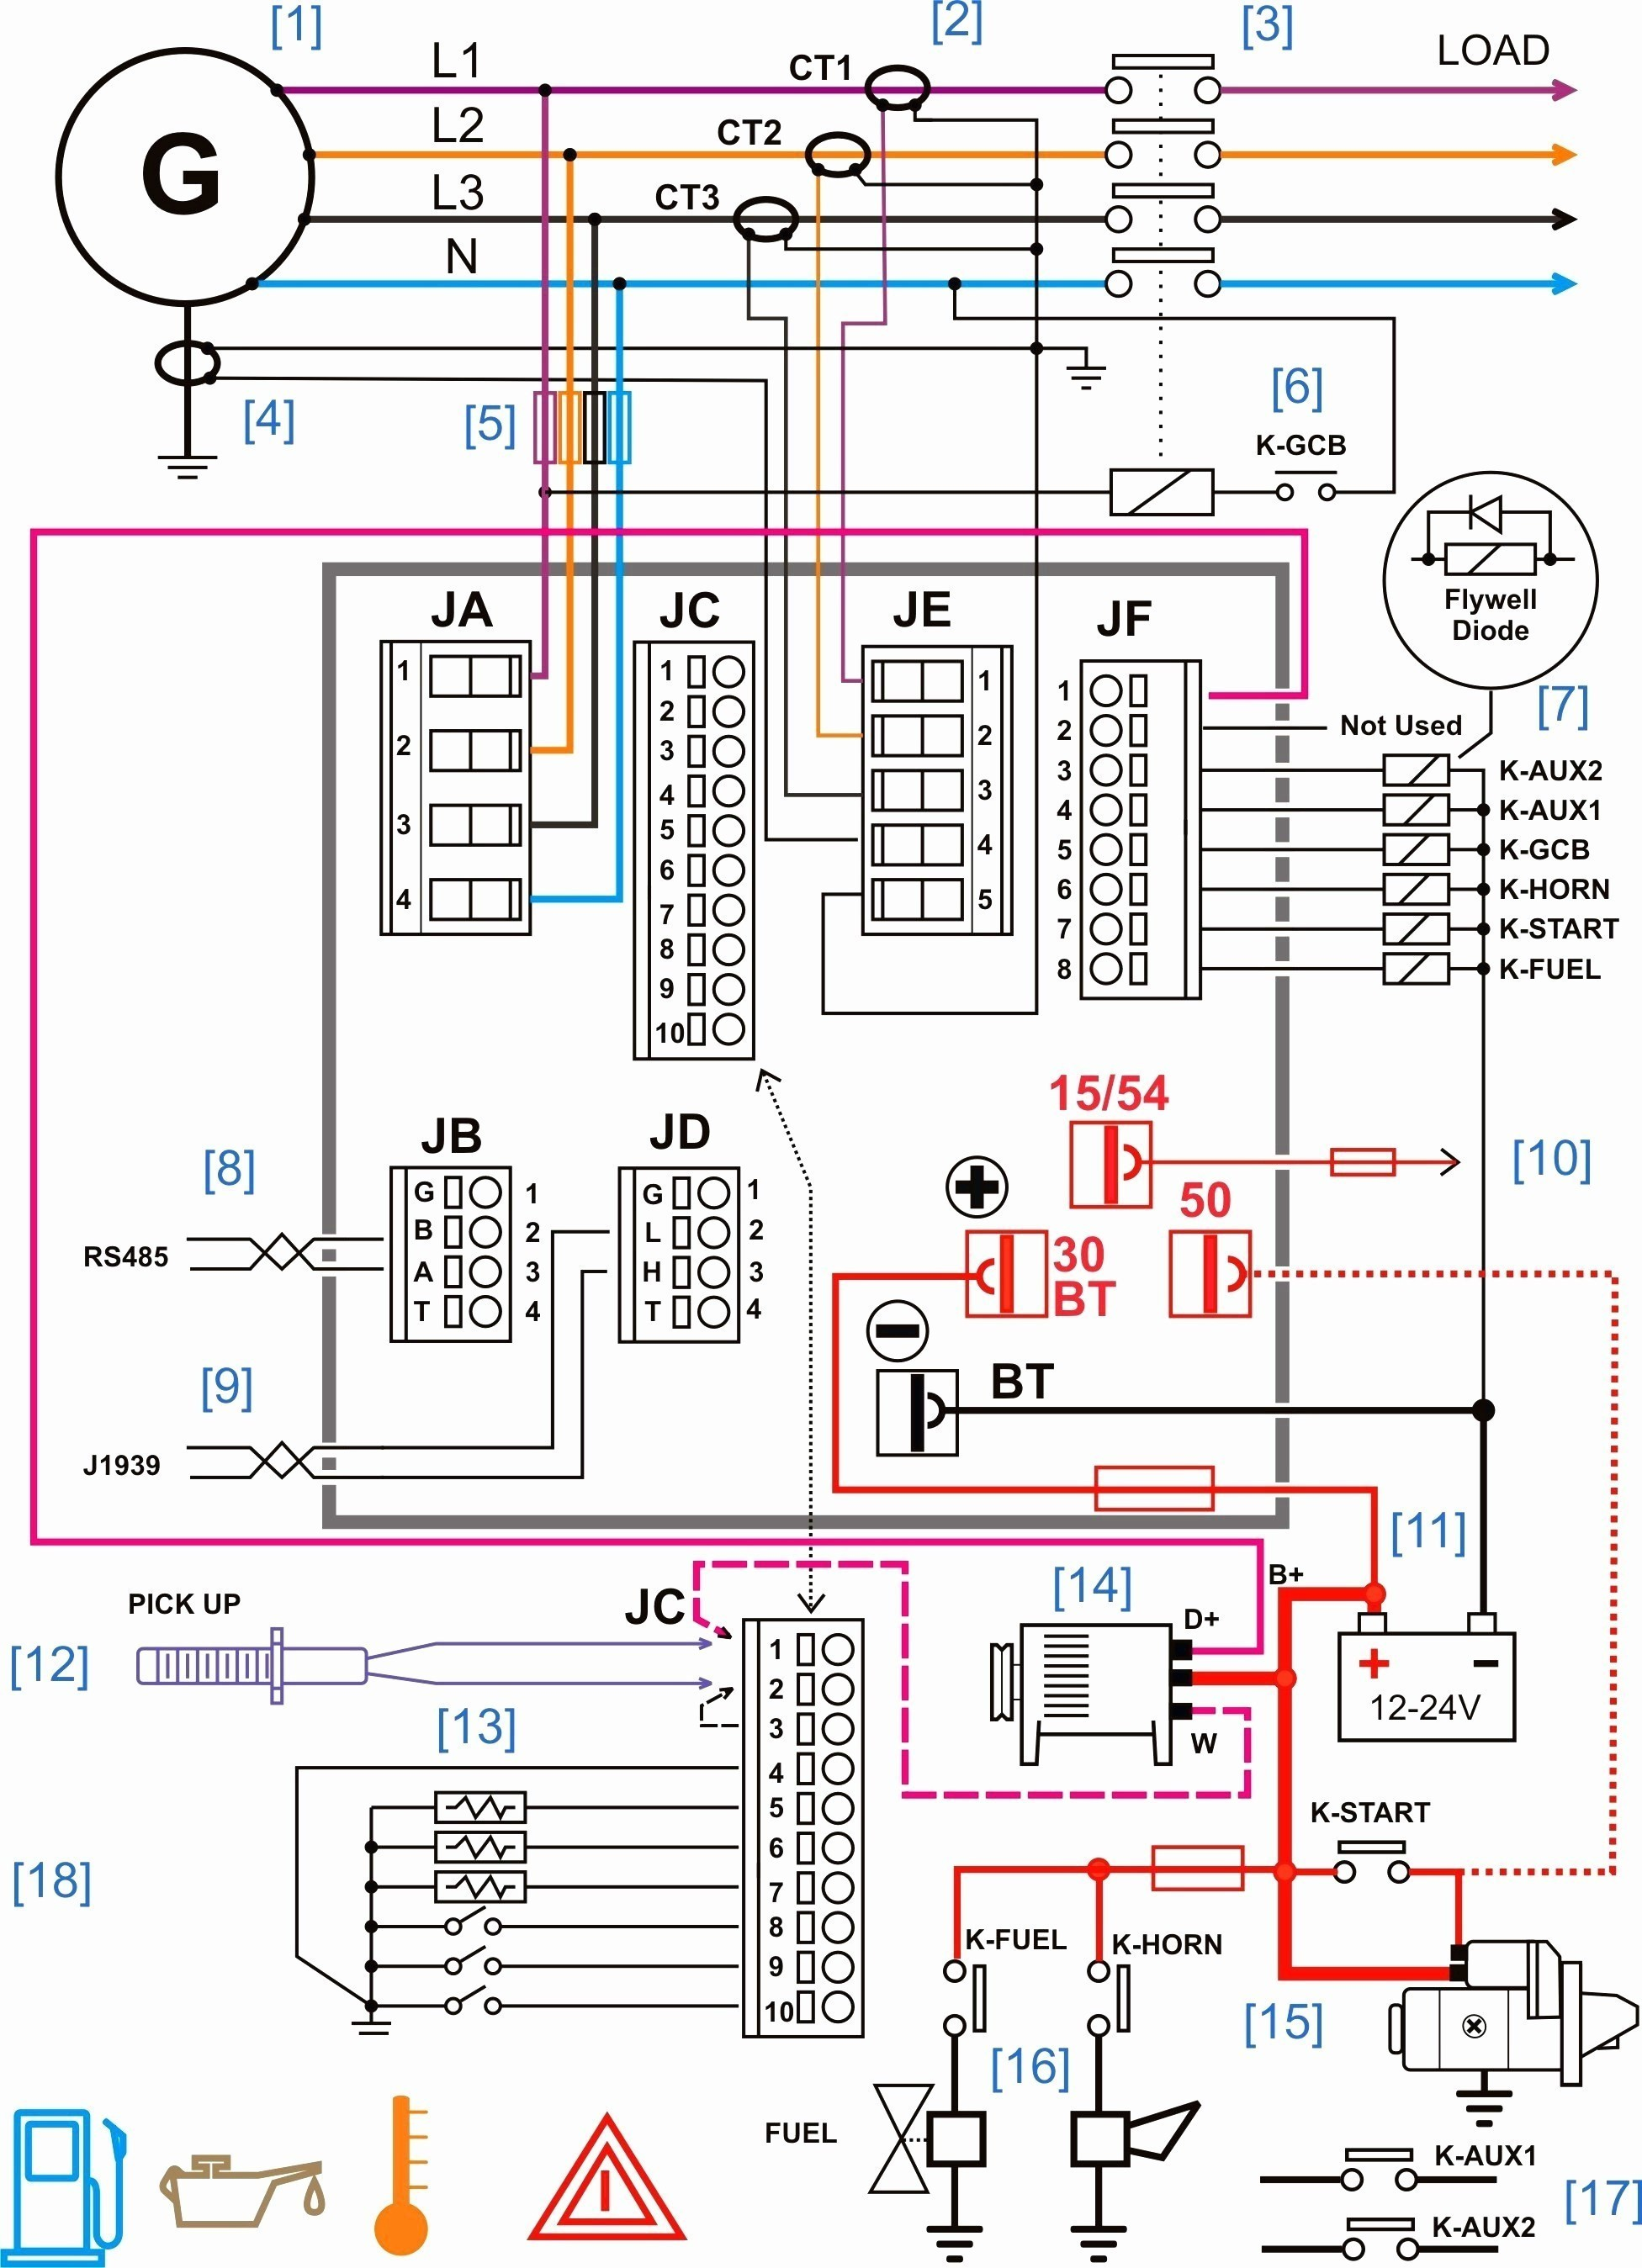 Wire Diagram for Car Stereo Wiring Diagram Book Best Wiring Harness Diagram Book Car Stereo Of Wire Diagram for Car Stereo Car Radio Wiring Diagram Car Radio Wiring Diagram – Http